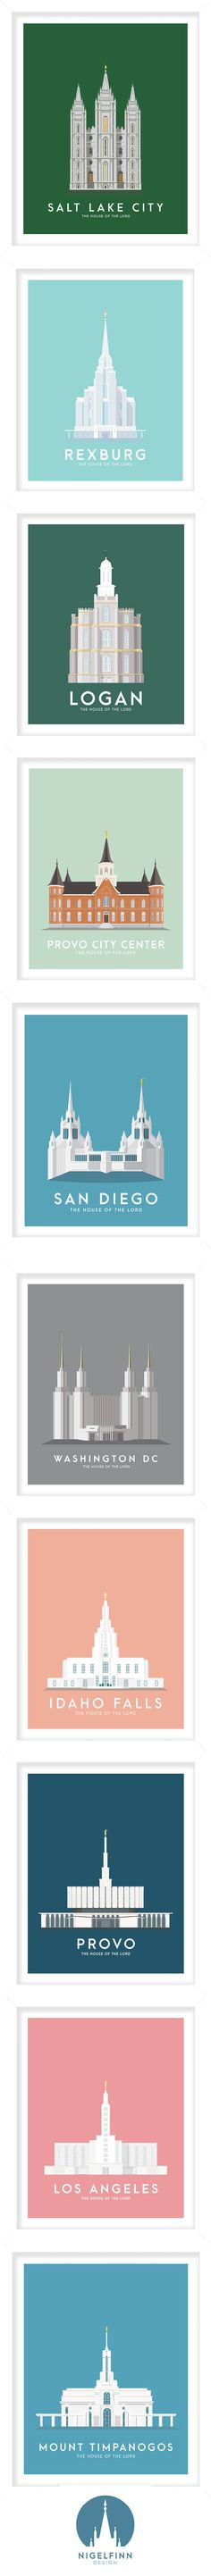 LDS Temple Prints | Salt Lake City | Washington DC | Provo City Center | Idaho Falls | Rexburg | Logan